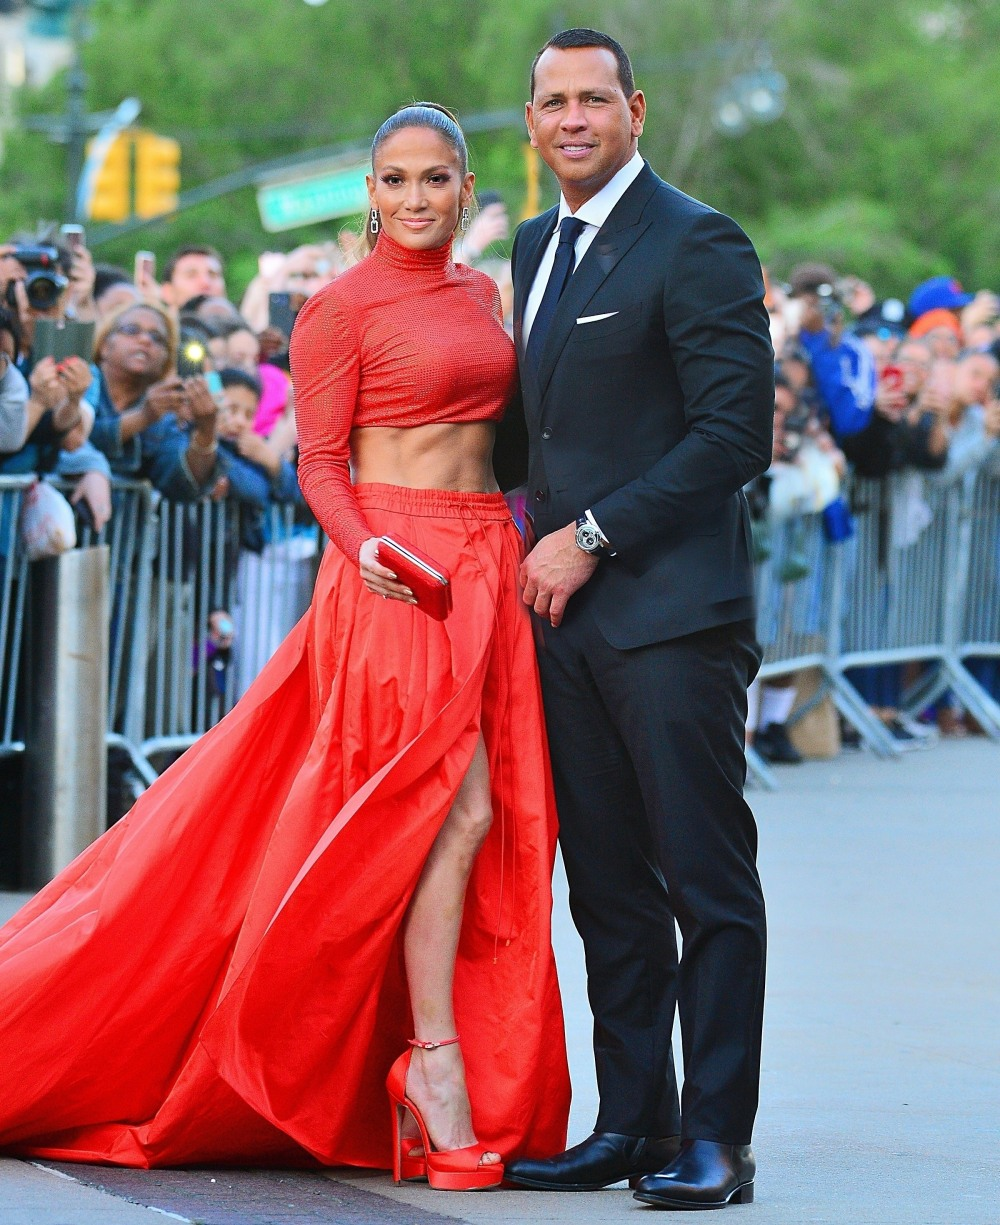 Jennifer Lopez and Alex Rodriguez are all smiles as they arrive to the 2019 CFDA Awards in NYC